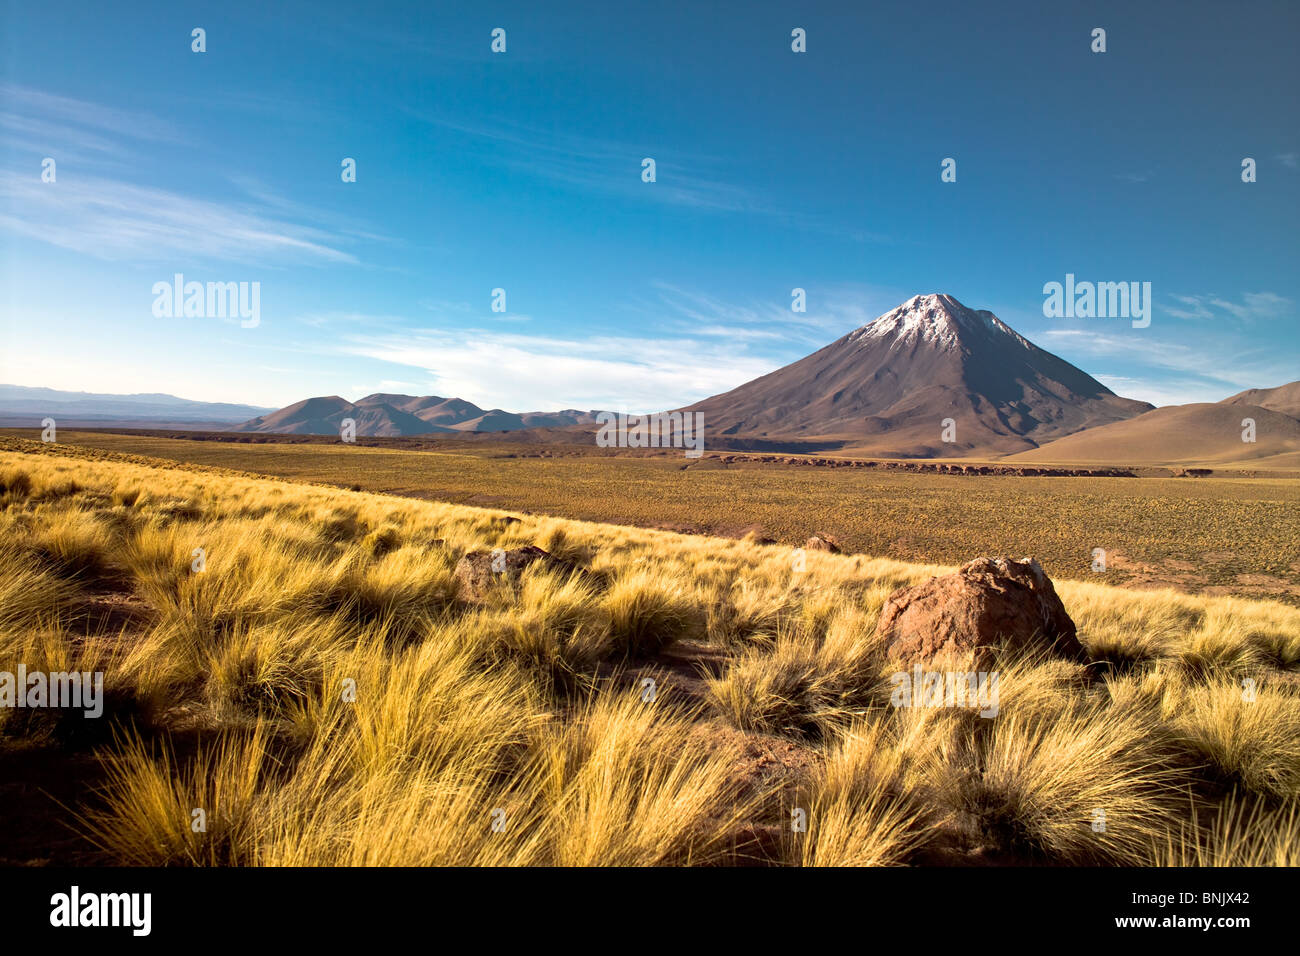 Licancabur volcano in the Atacama desert, Chile - Stock Image